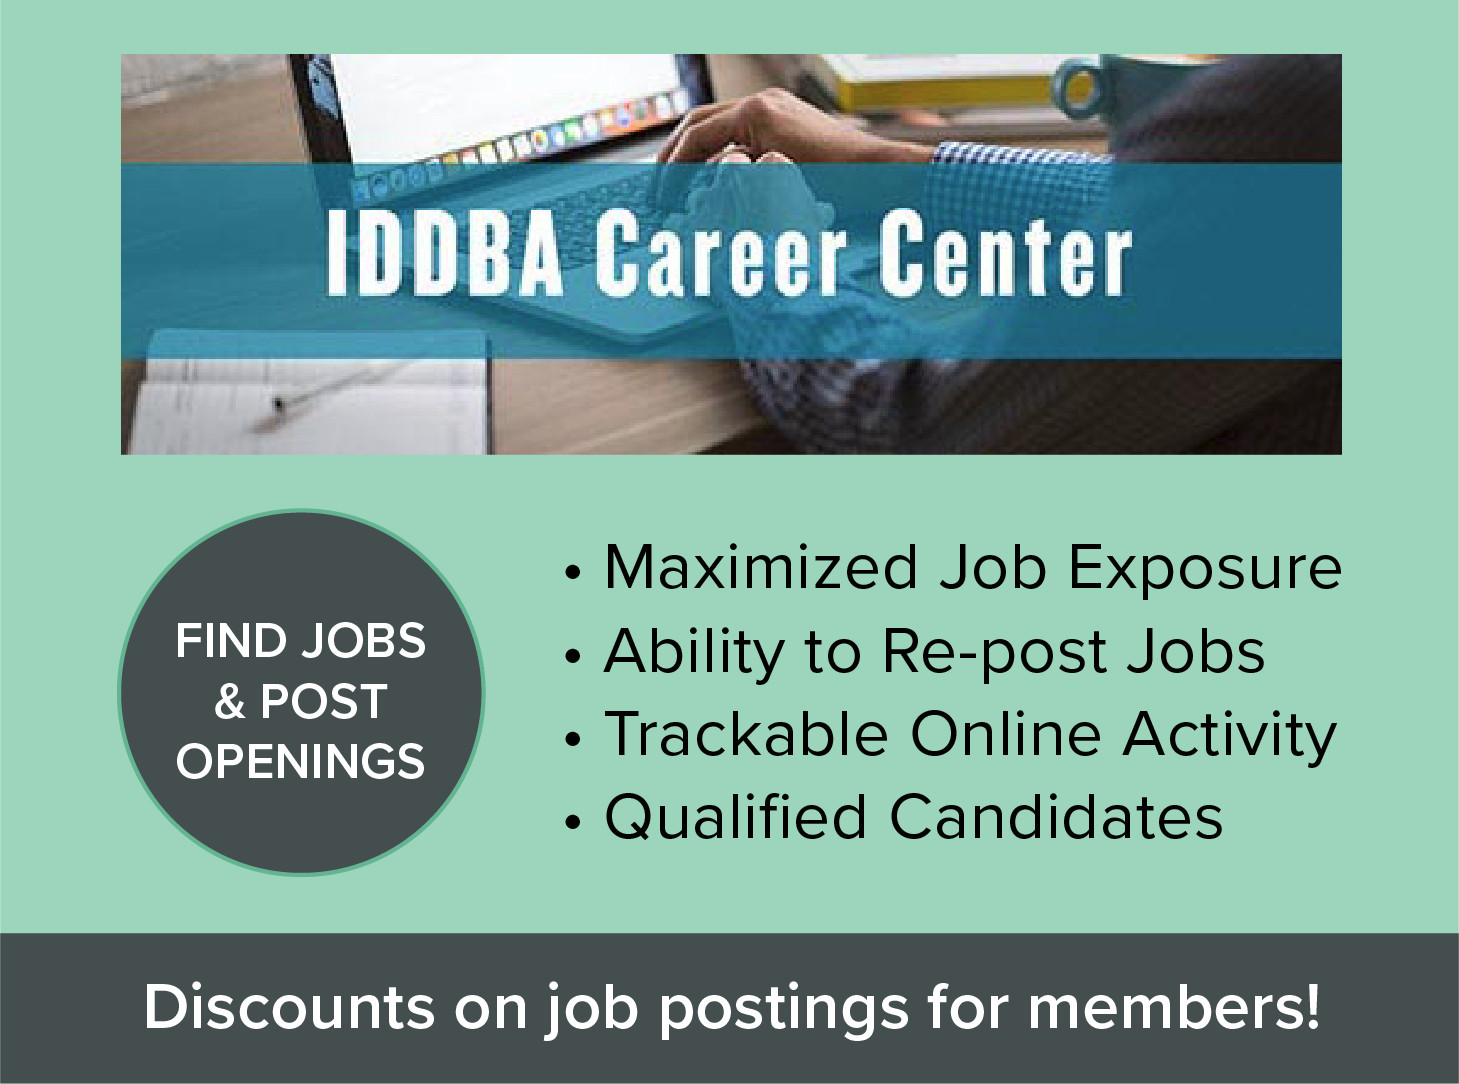 IDDBA Career Center